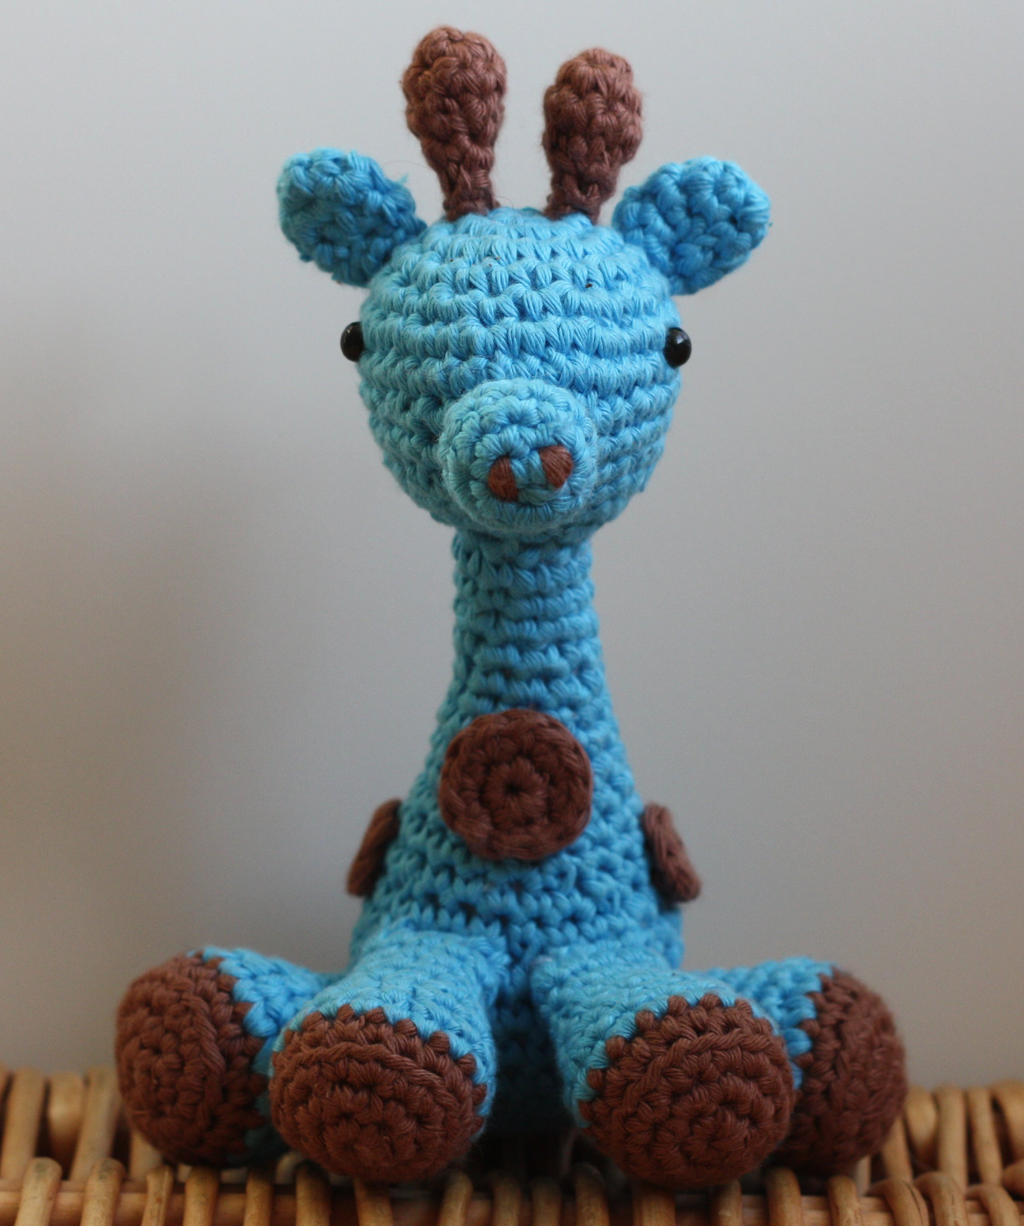 Amigurumi Hello Kitty Collection 1 : Blue Giraffe (Crochet -- amigurumi) by matandhelen on ...